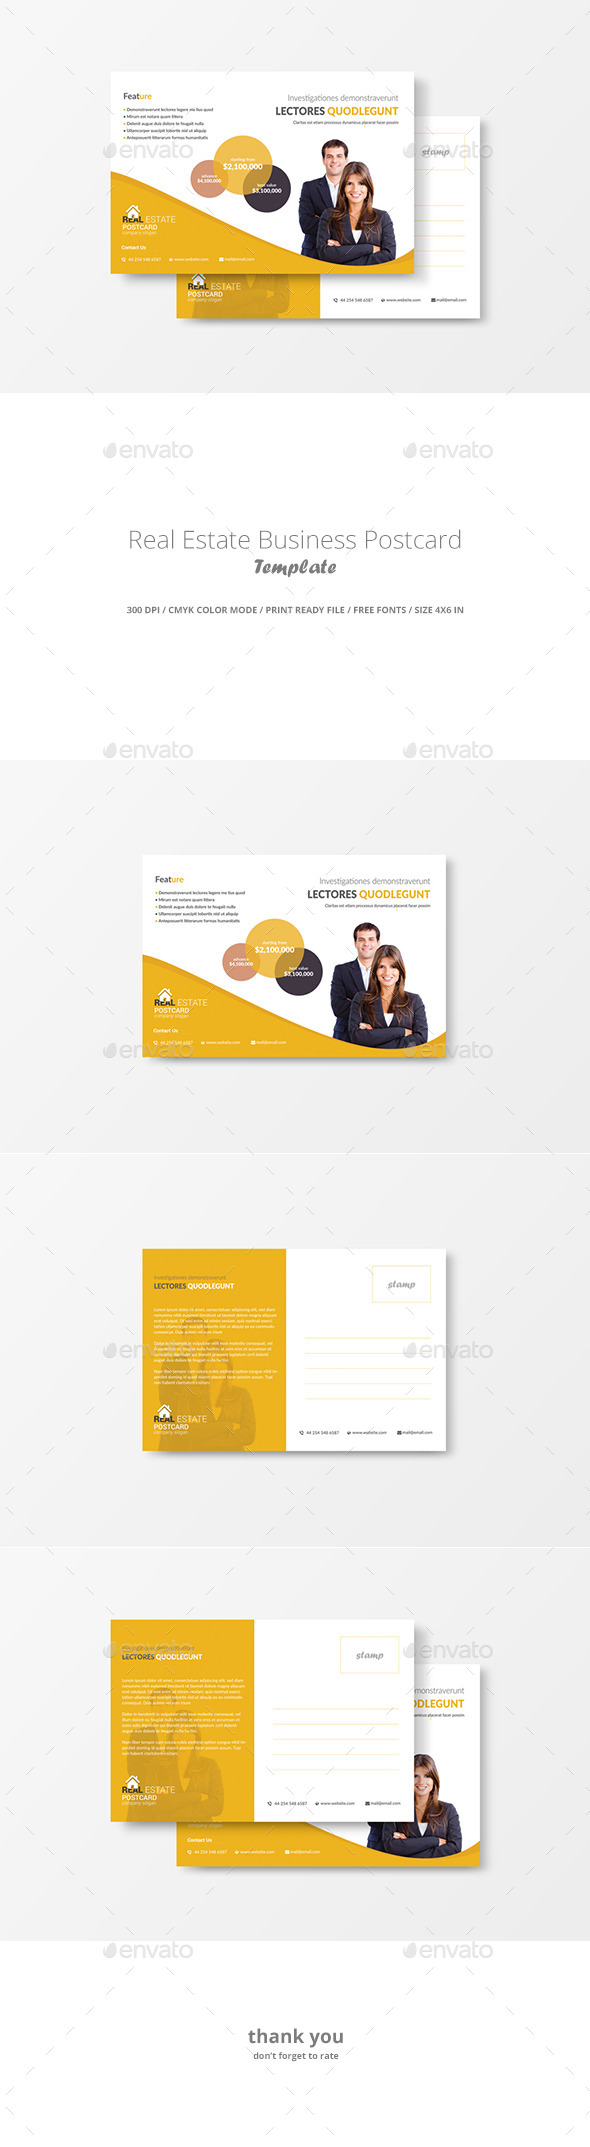 GraphicRiver Real Estate Business Postcard Template 11602267